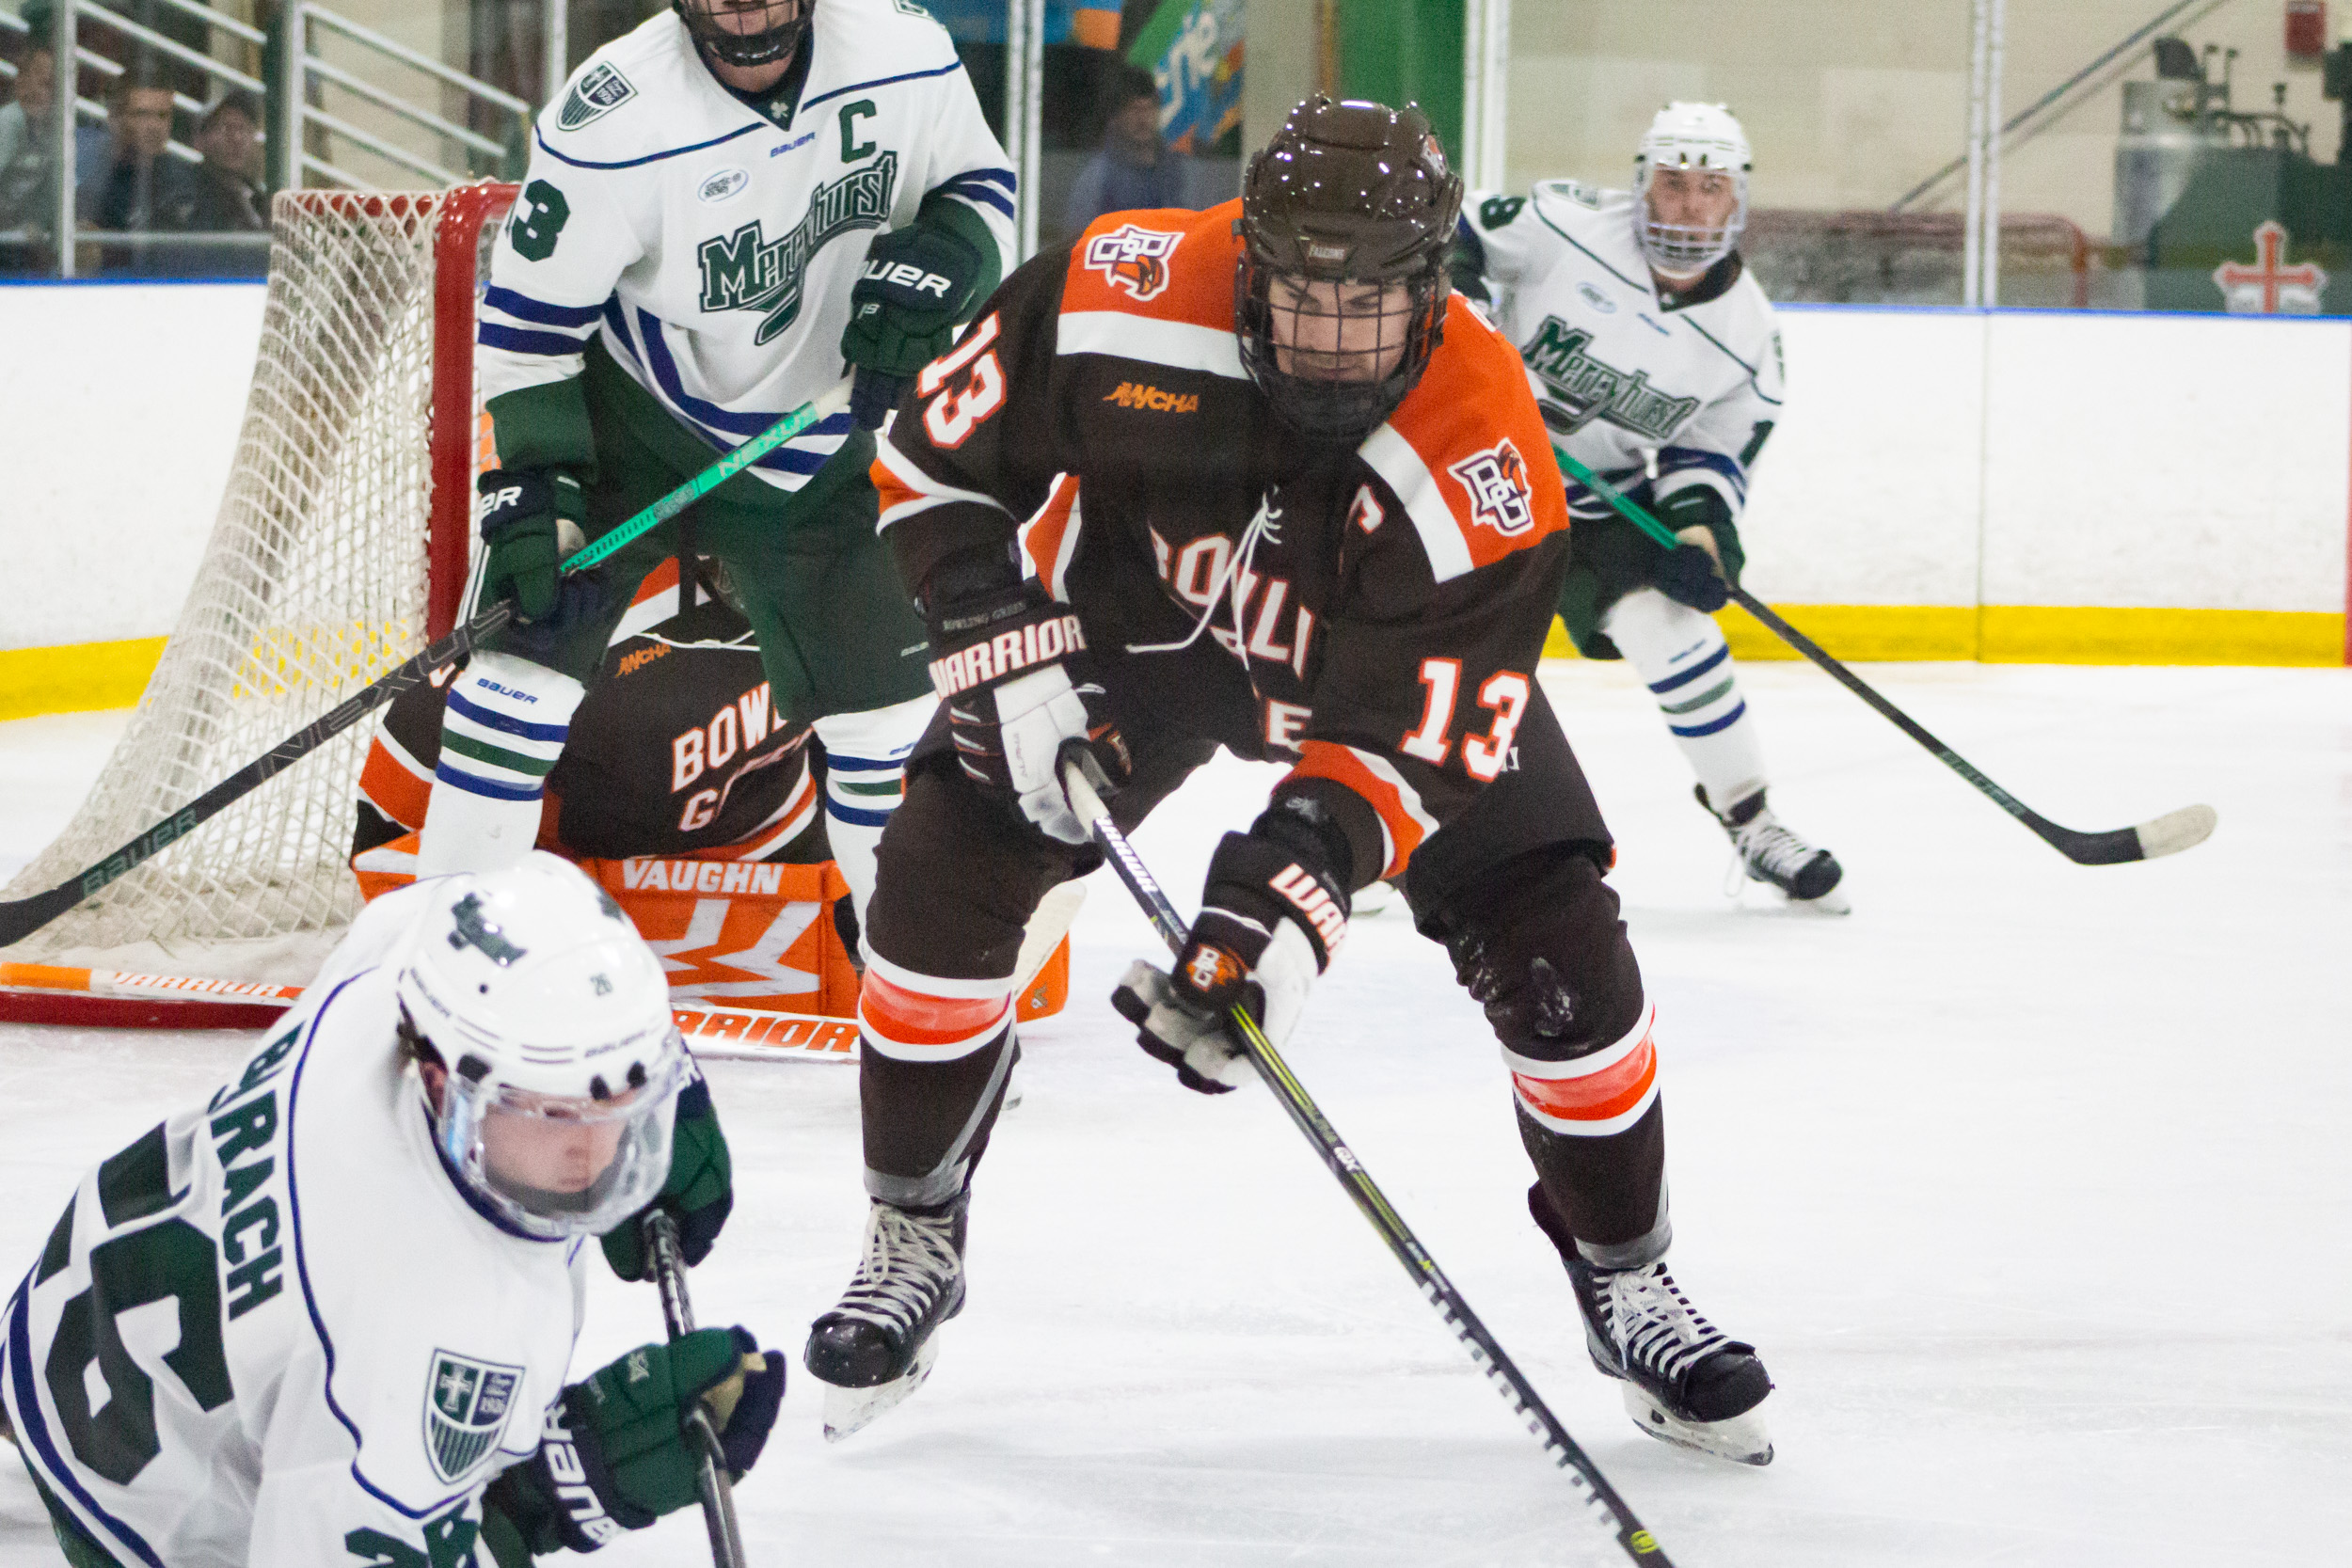 Baylis' hat trick paces BG in dominating 8-2 win over Mercyhurst